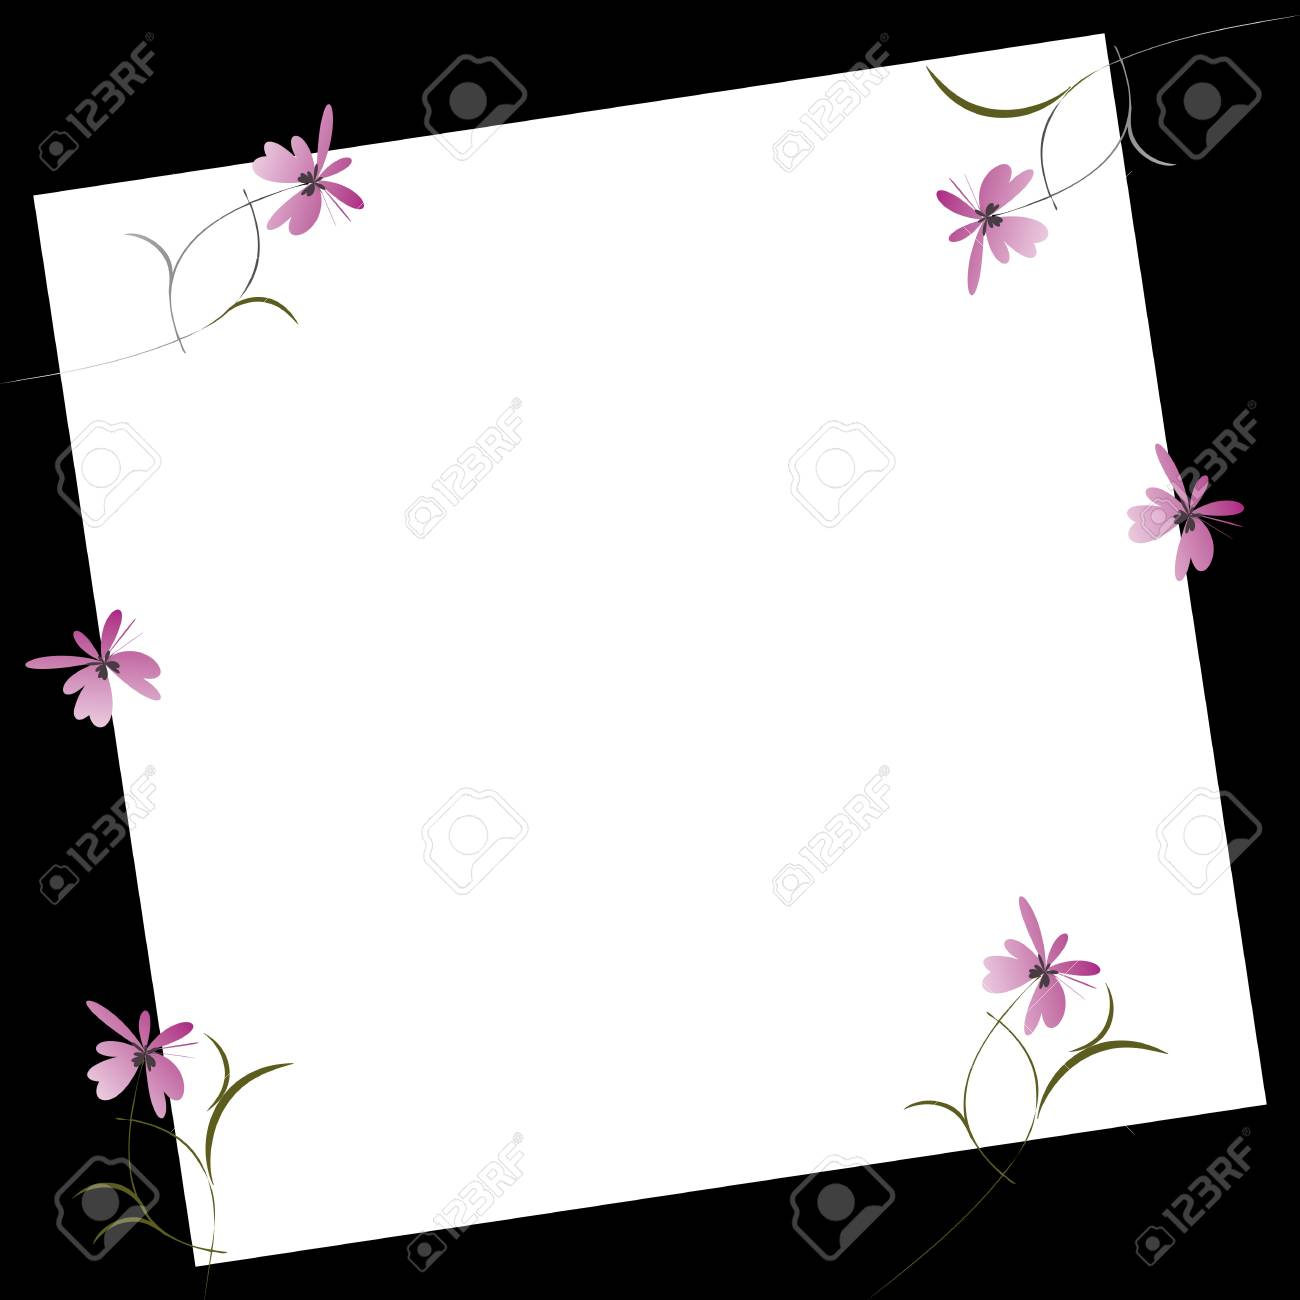 Invitation card with flowers Stock Vector - 14952227